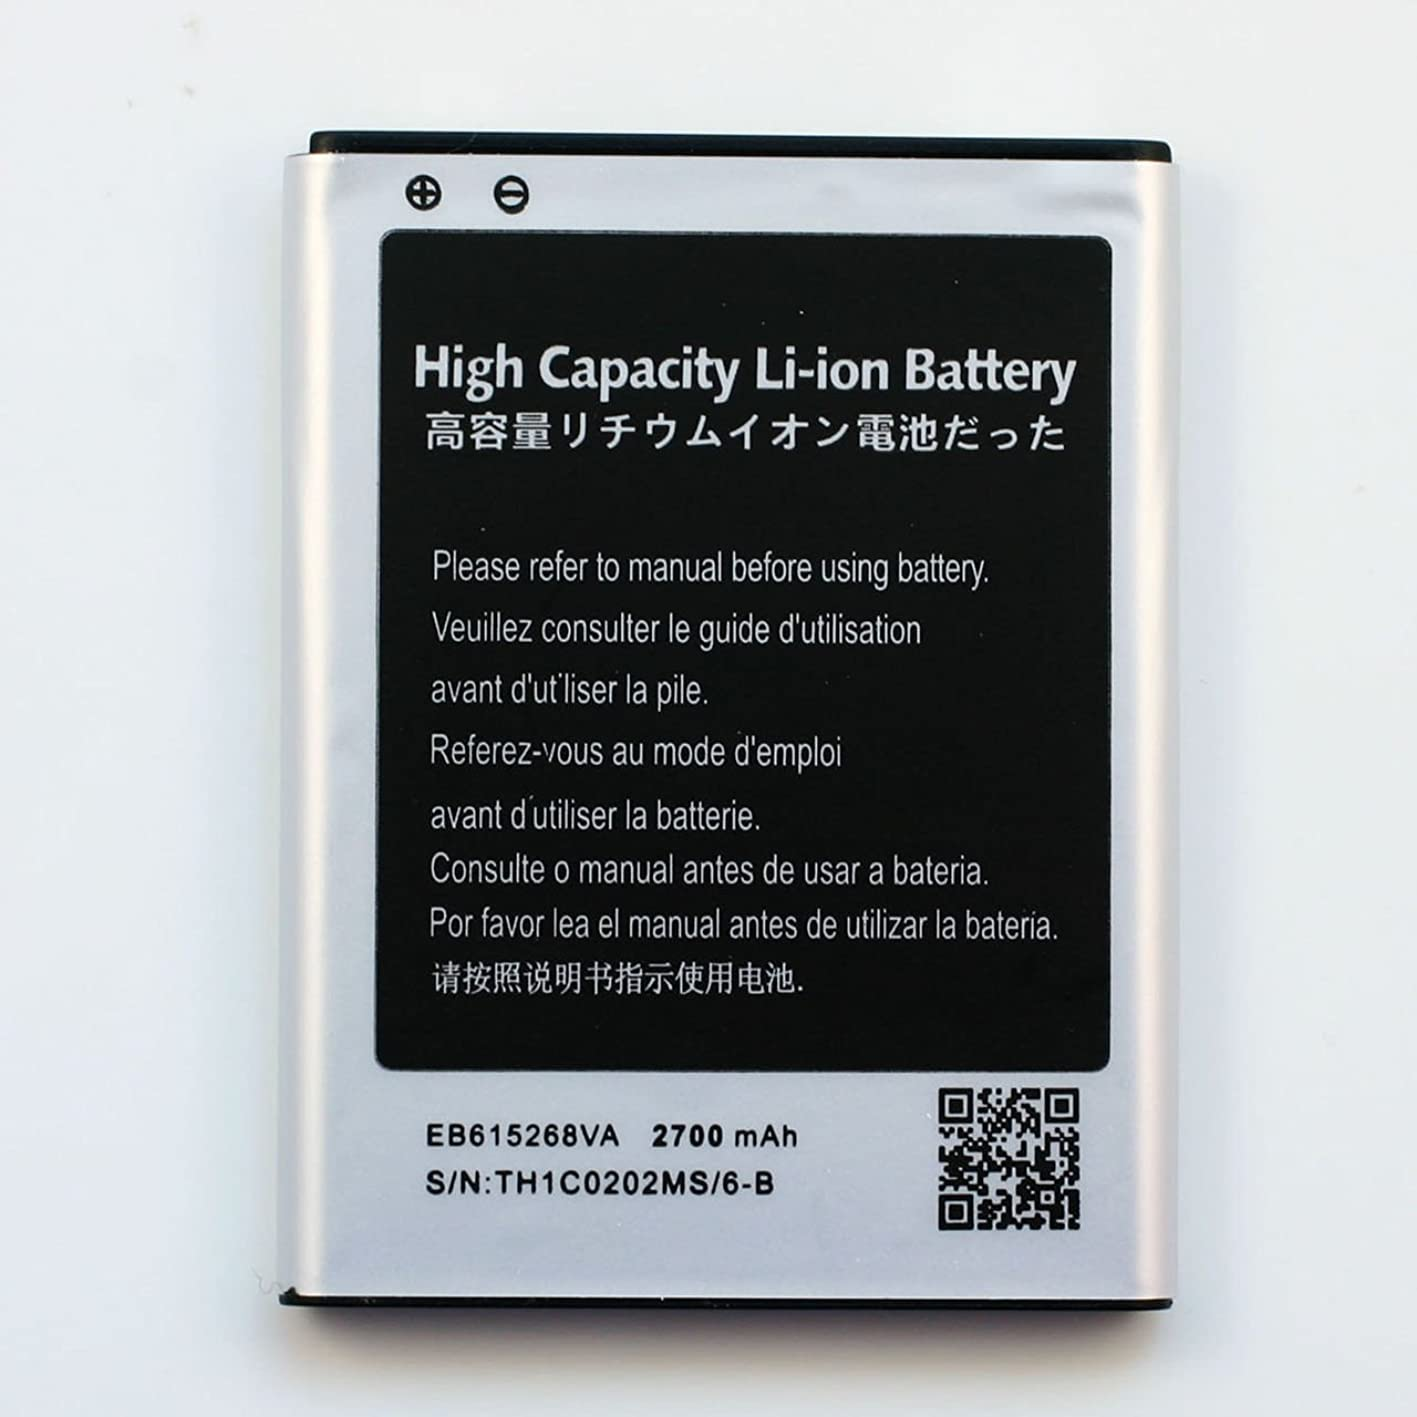 Standard Replacement Li-ion Battery for Samsung Galaxy Note Sgh-i717 ATT 2500 Mah Battery Eb615268vabxar for Note One faddvdsvzct658